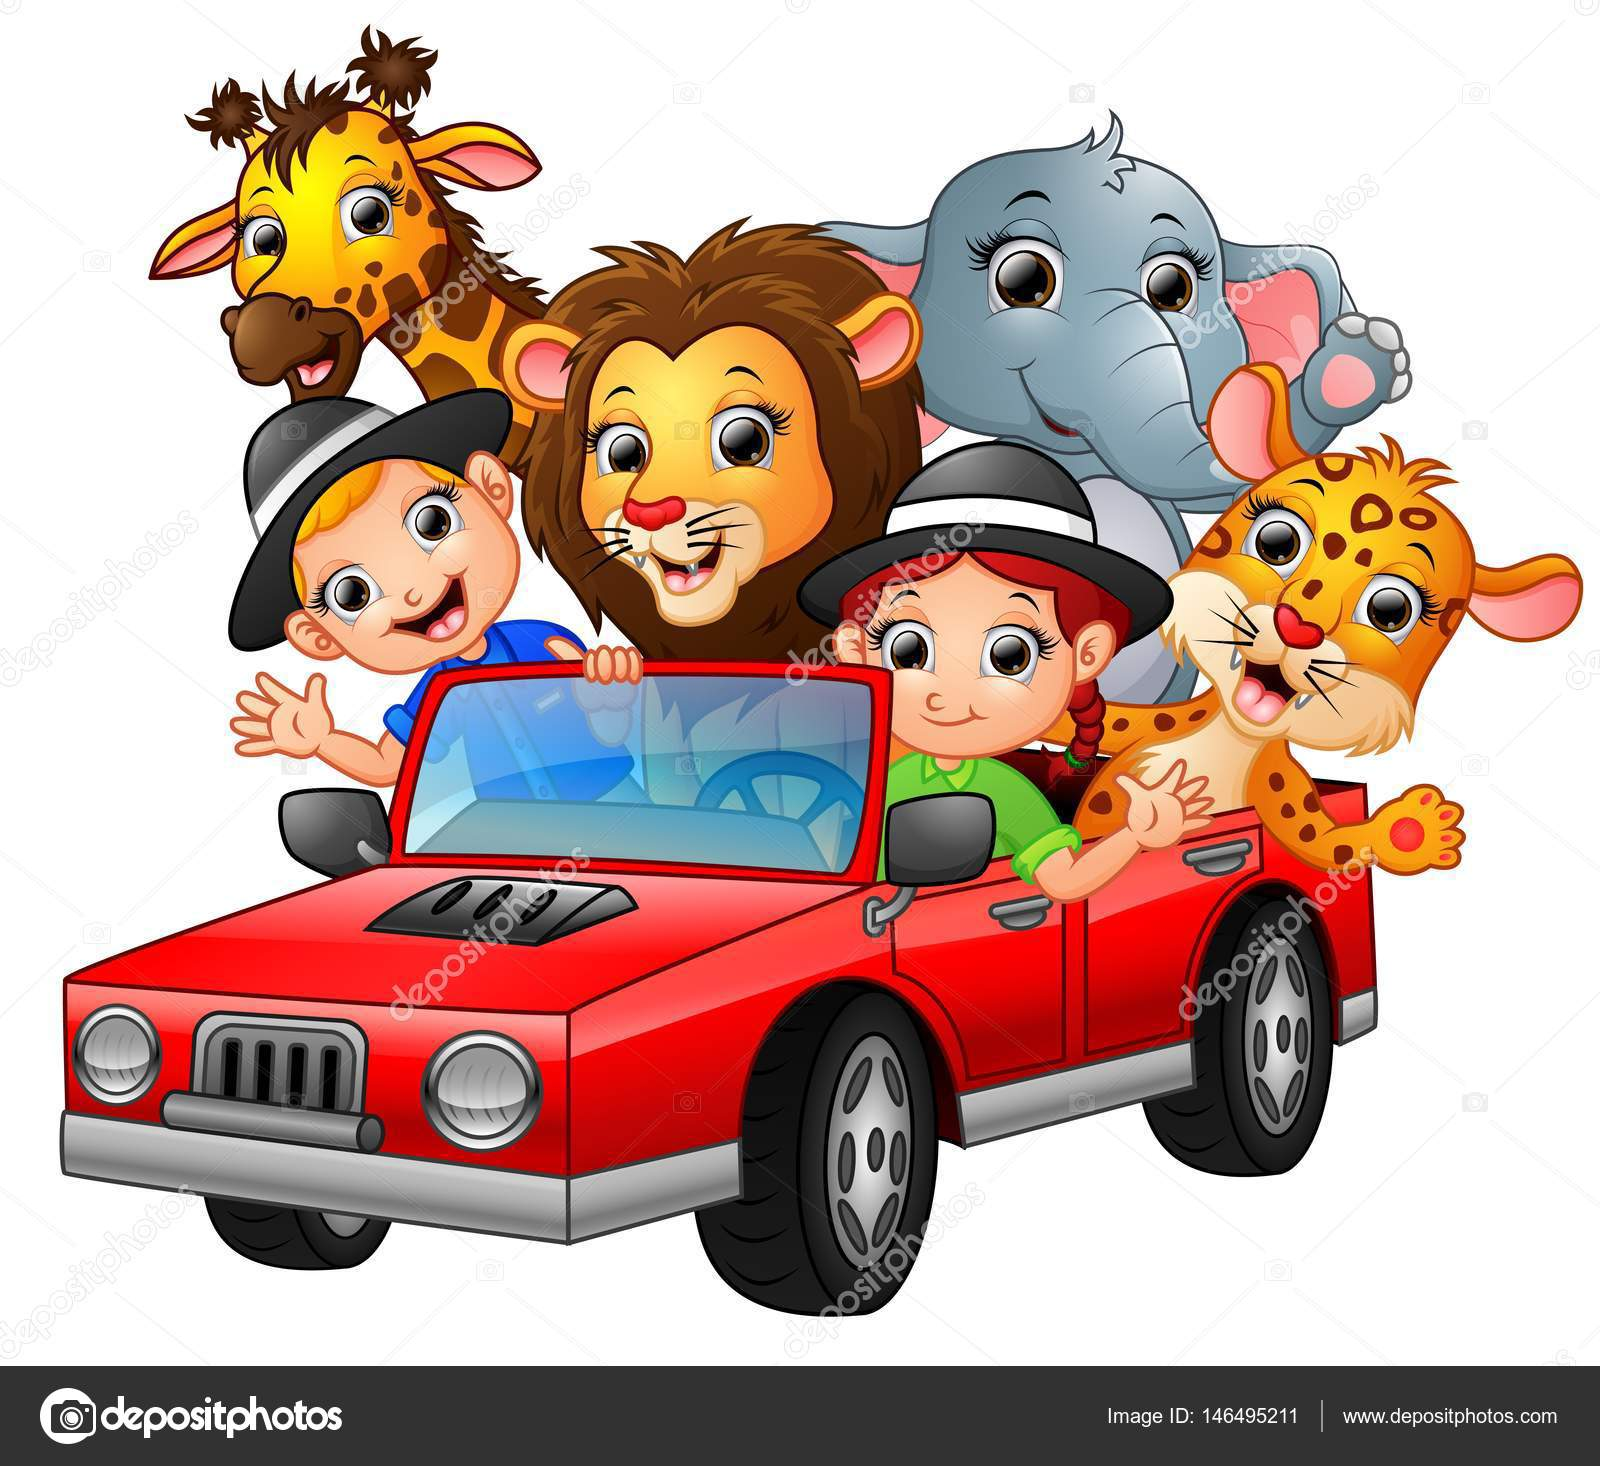 enfants dessin anim conduisant une voiture rouge avec des animaux sauvages image vectorielle. Black Bedroom Furniture Sets. Home Design Ideas